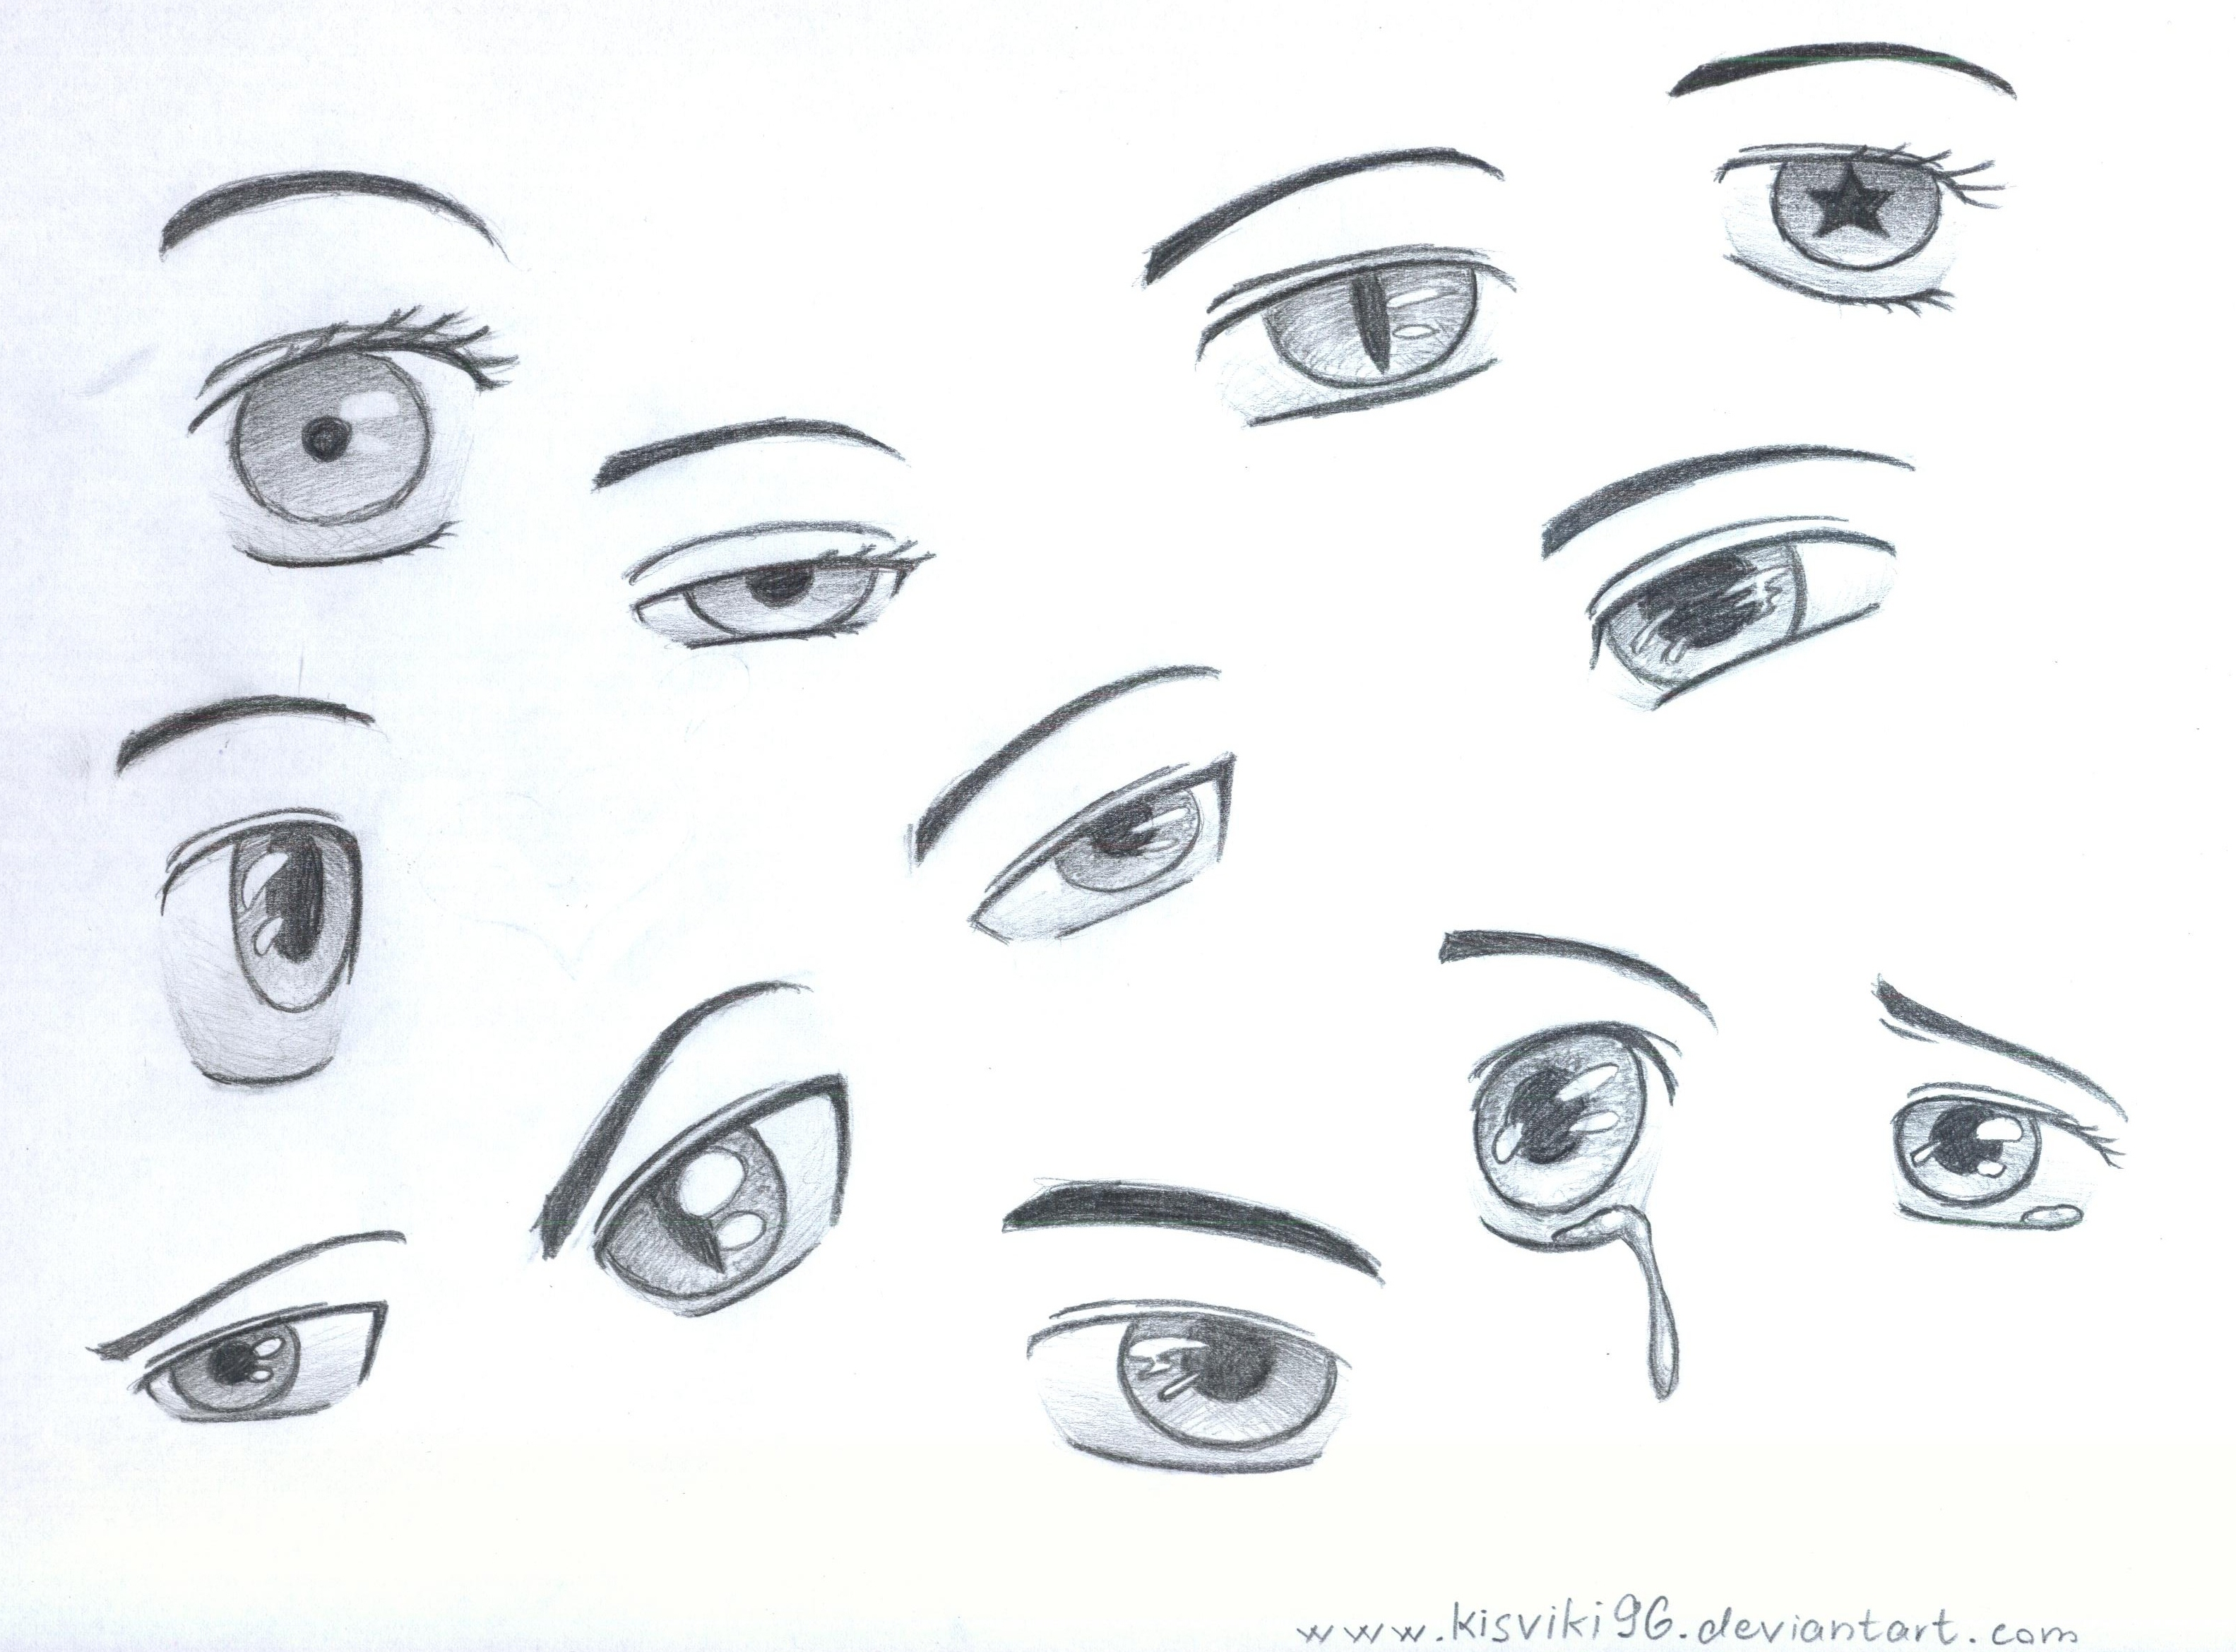 Anime Eyes By Kisviki96